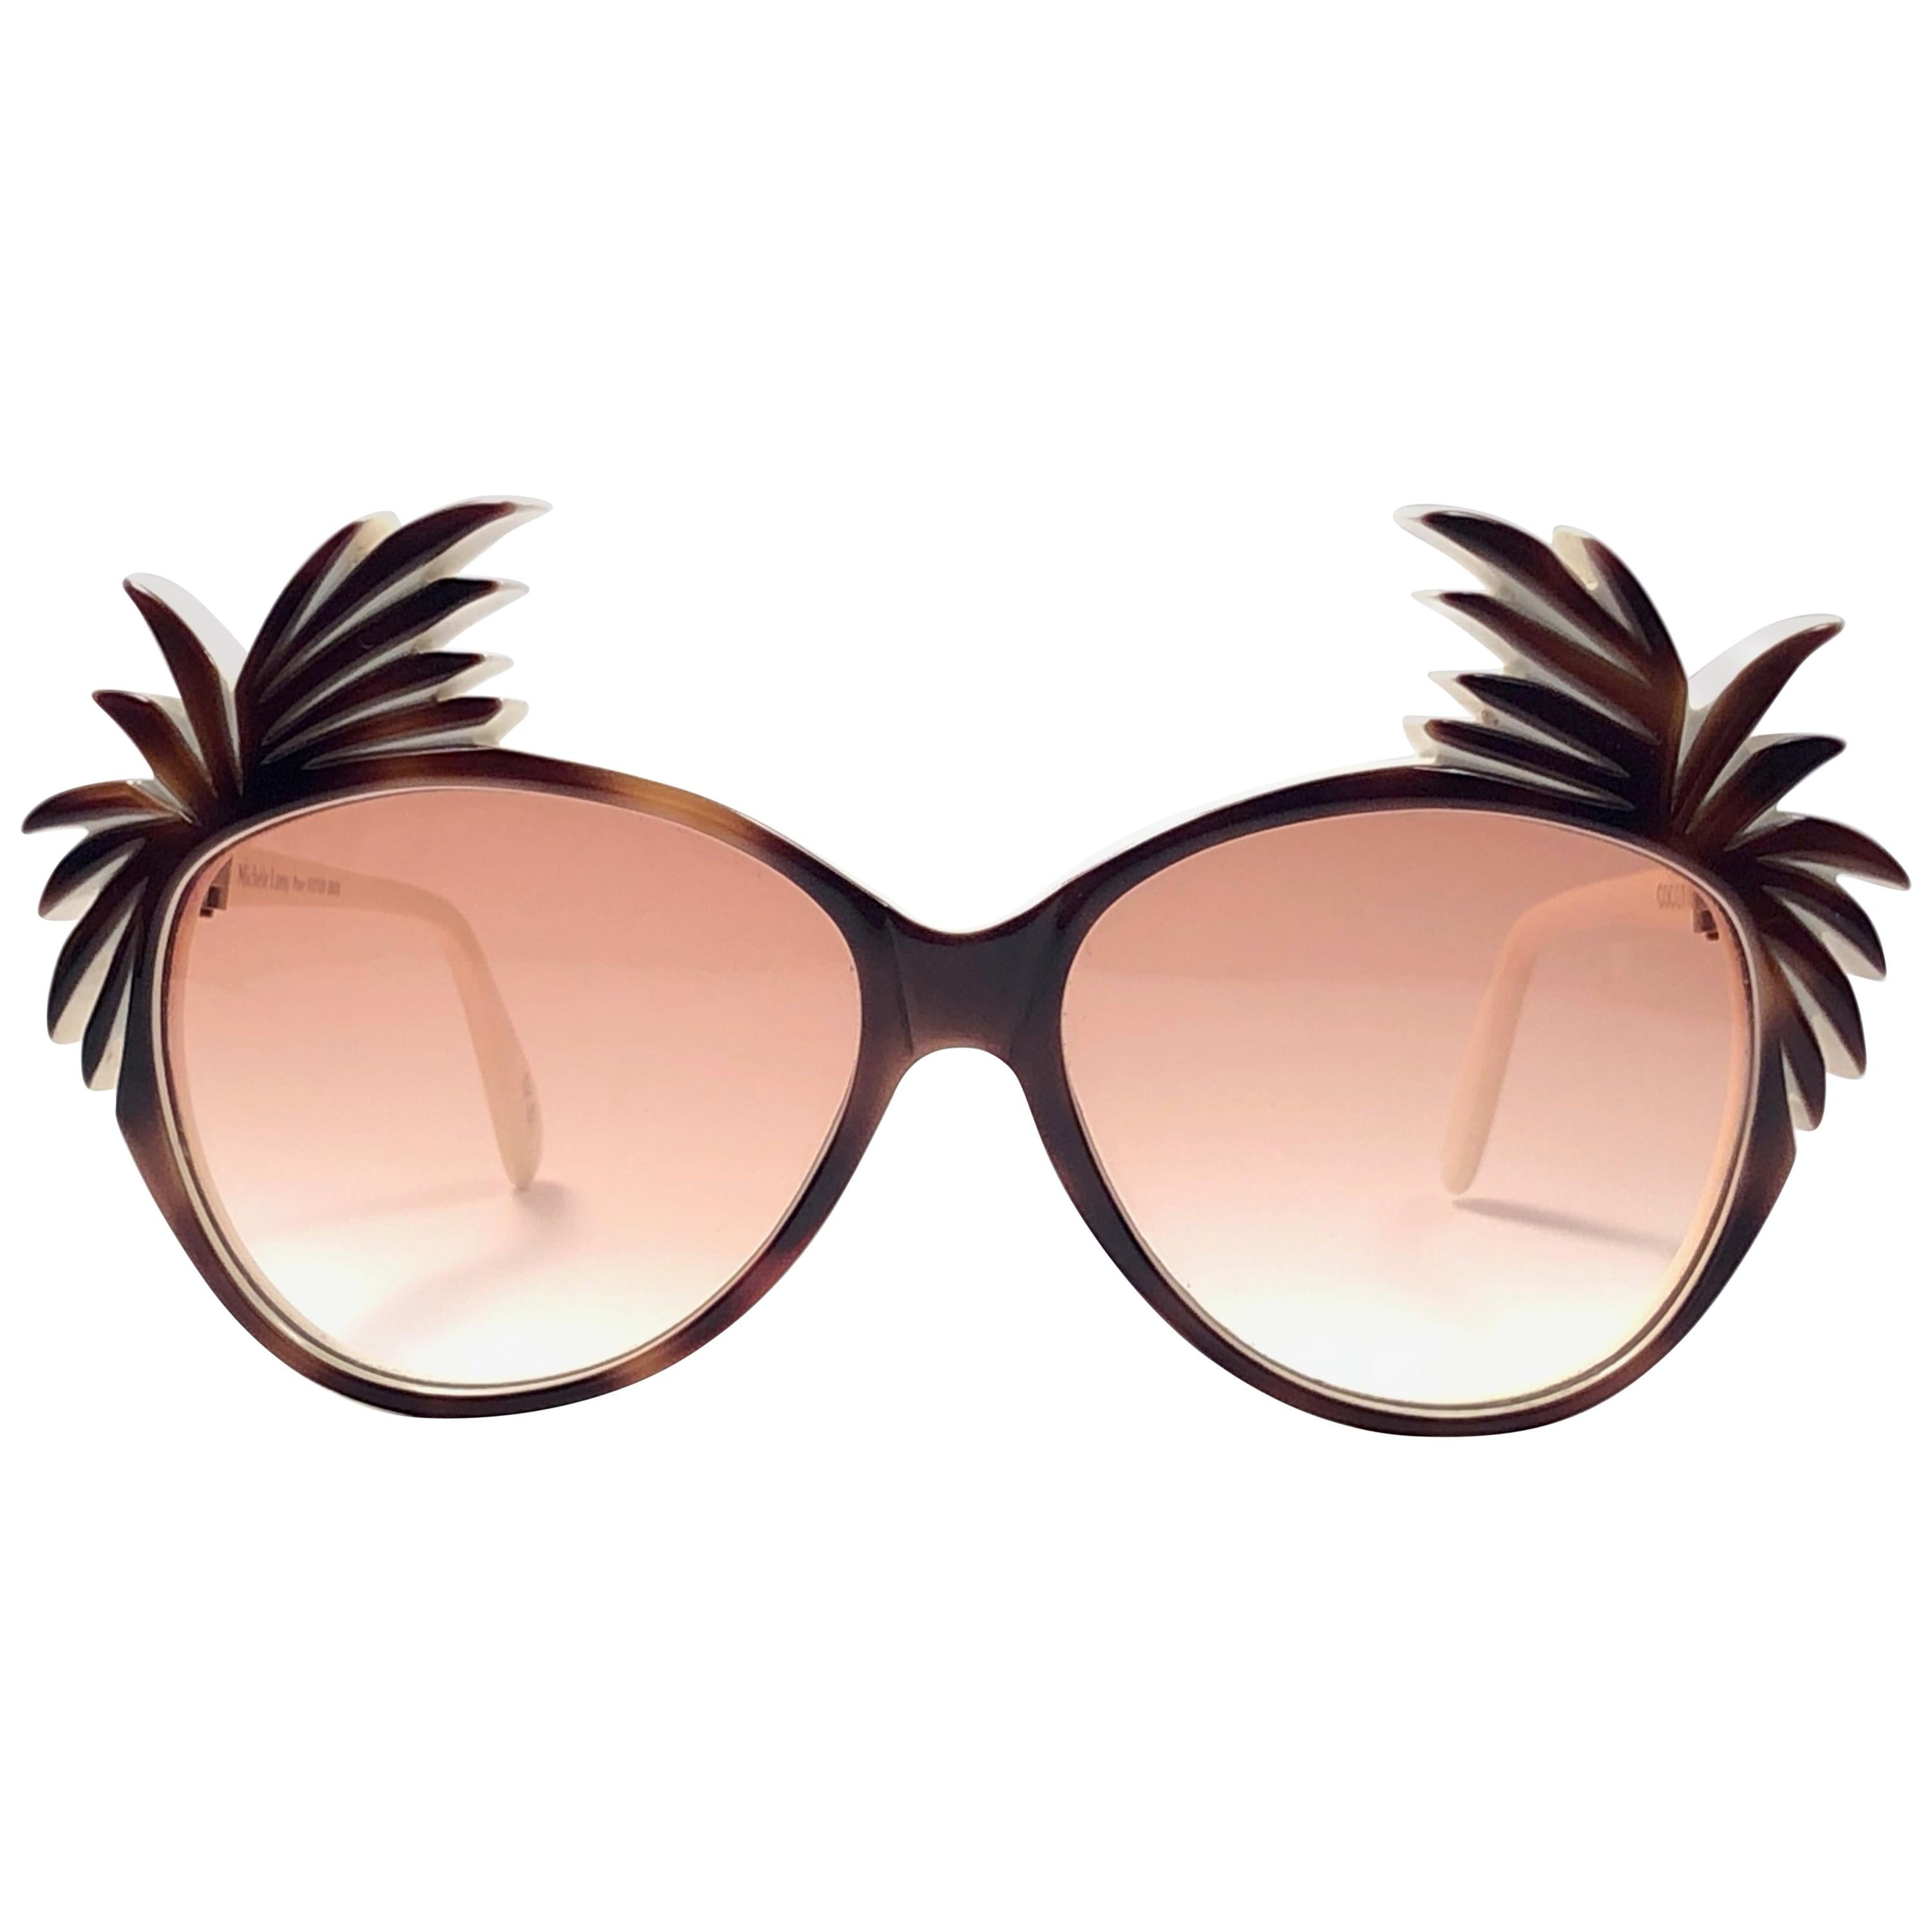 """New Vintage Michele Lamy for Victor Gros """" Cocotier """" Sunglasses Made in France"""